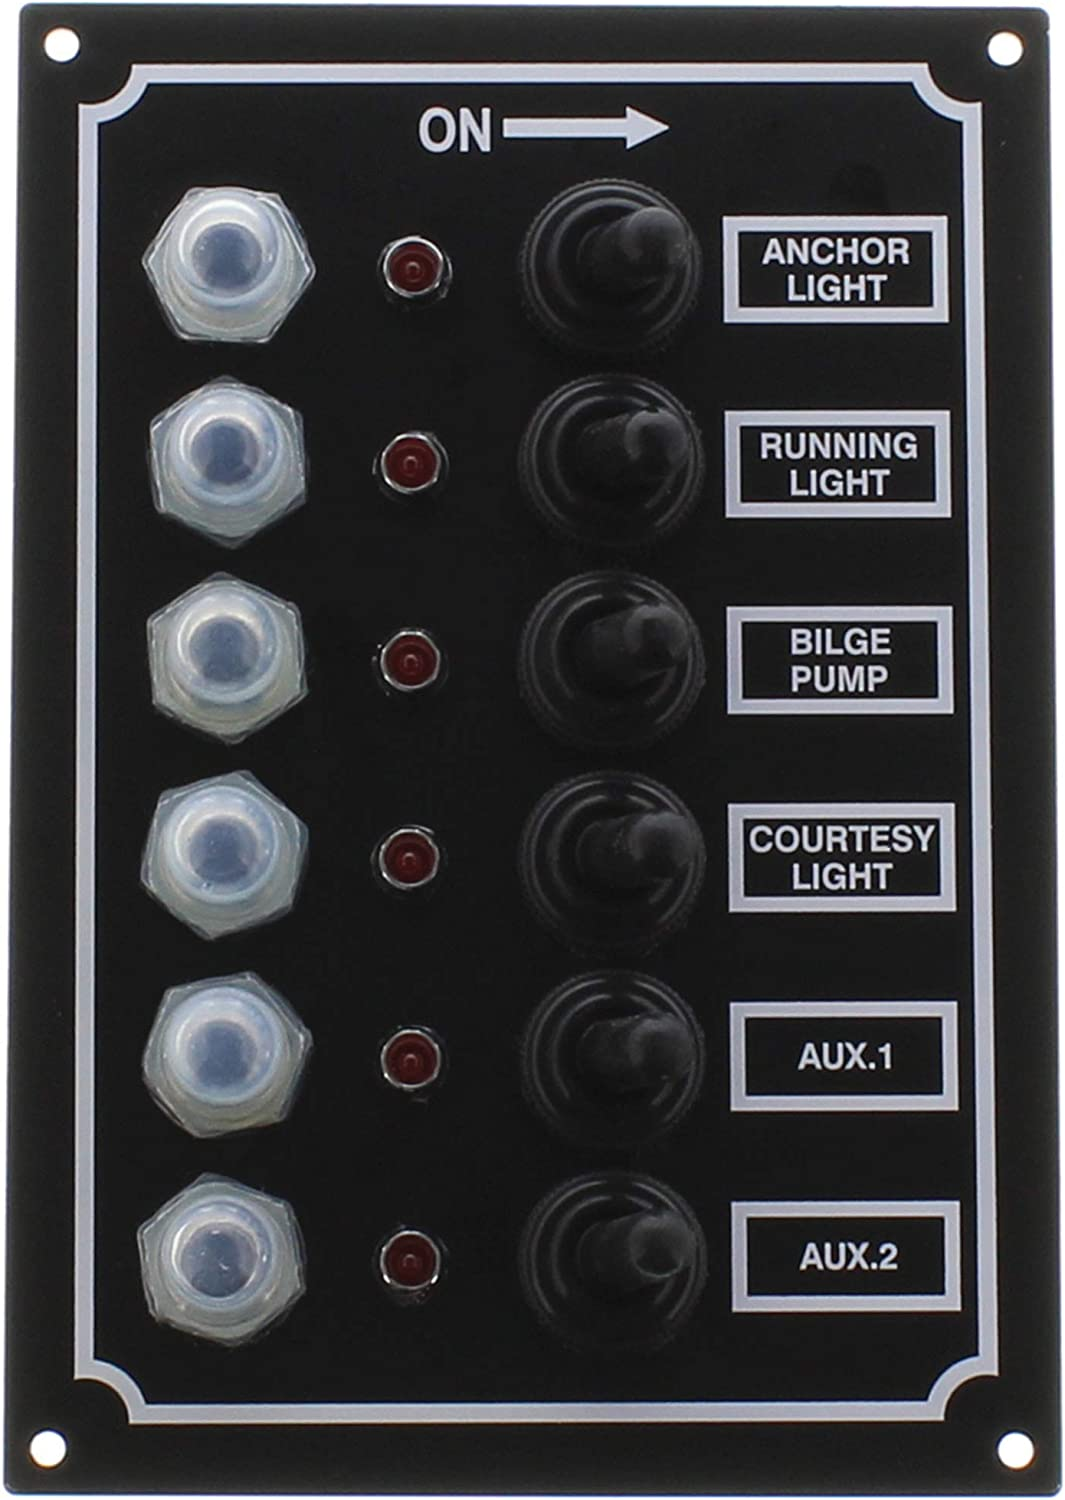 SeaSense LED Switch Panel 6 Gang with Breaker and Rubber Boots : Boating Battery Switches : Sports & Outdoors